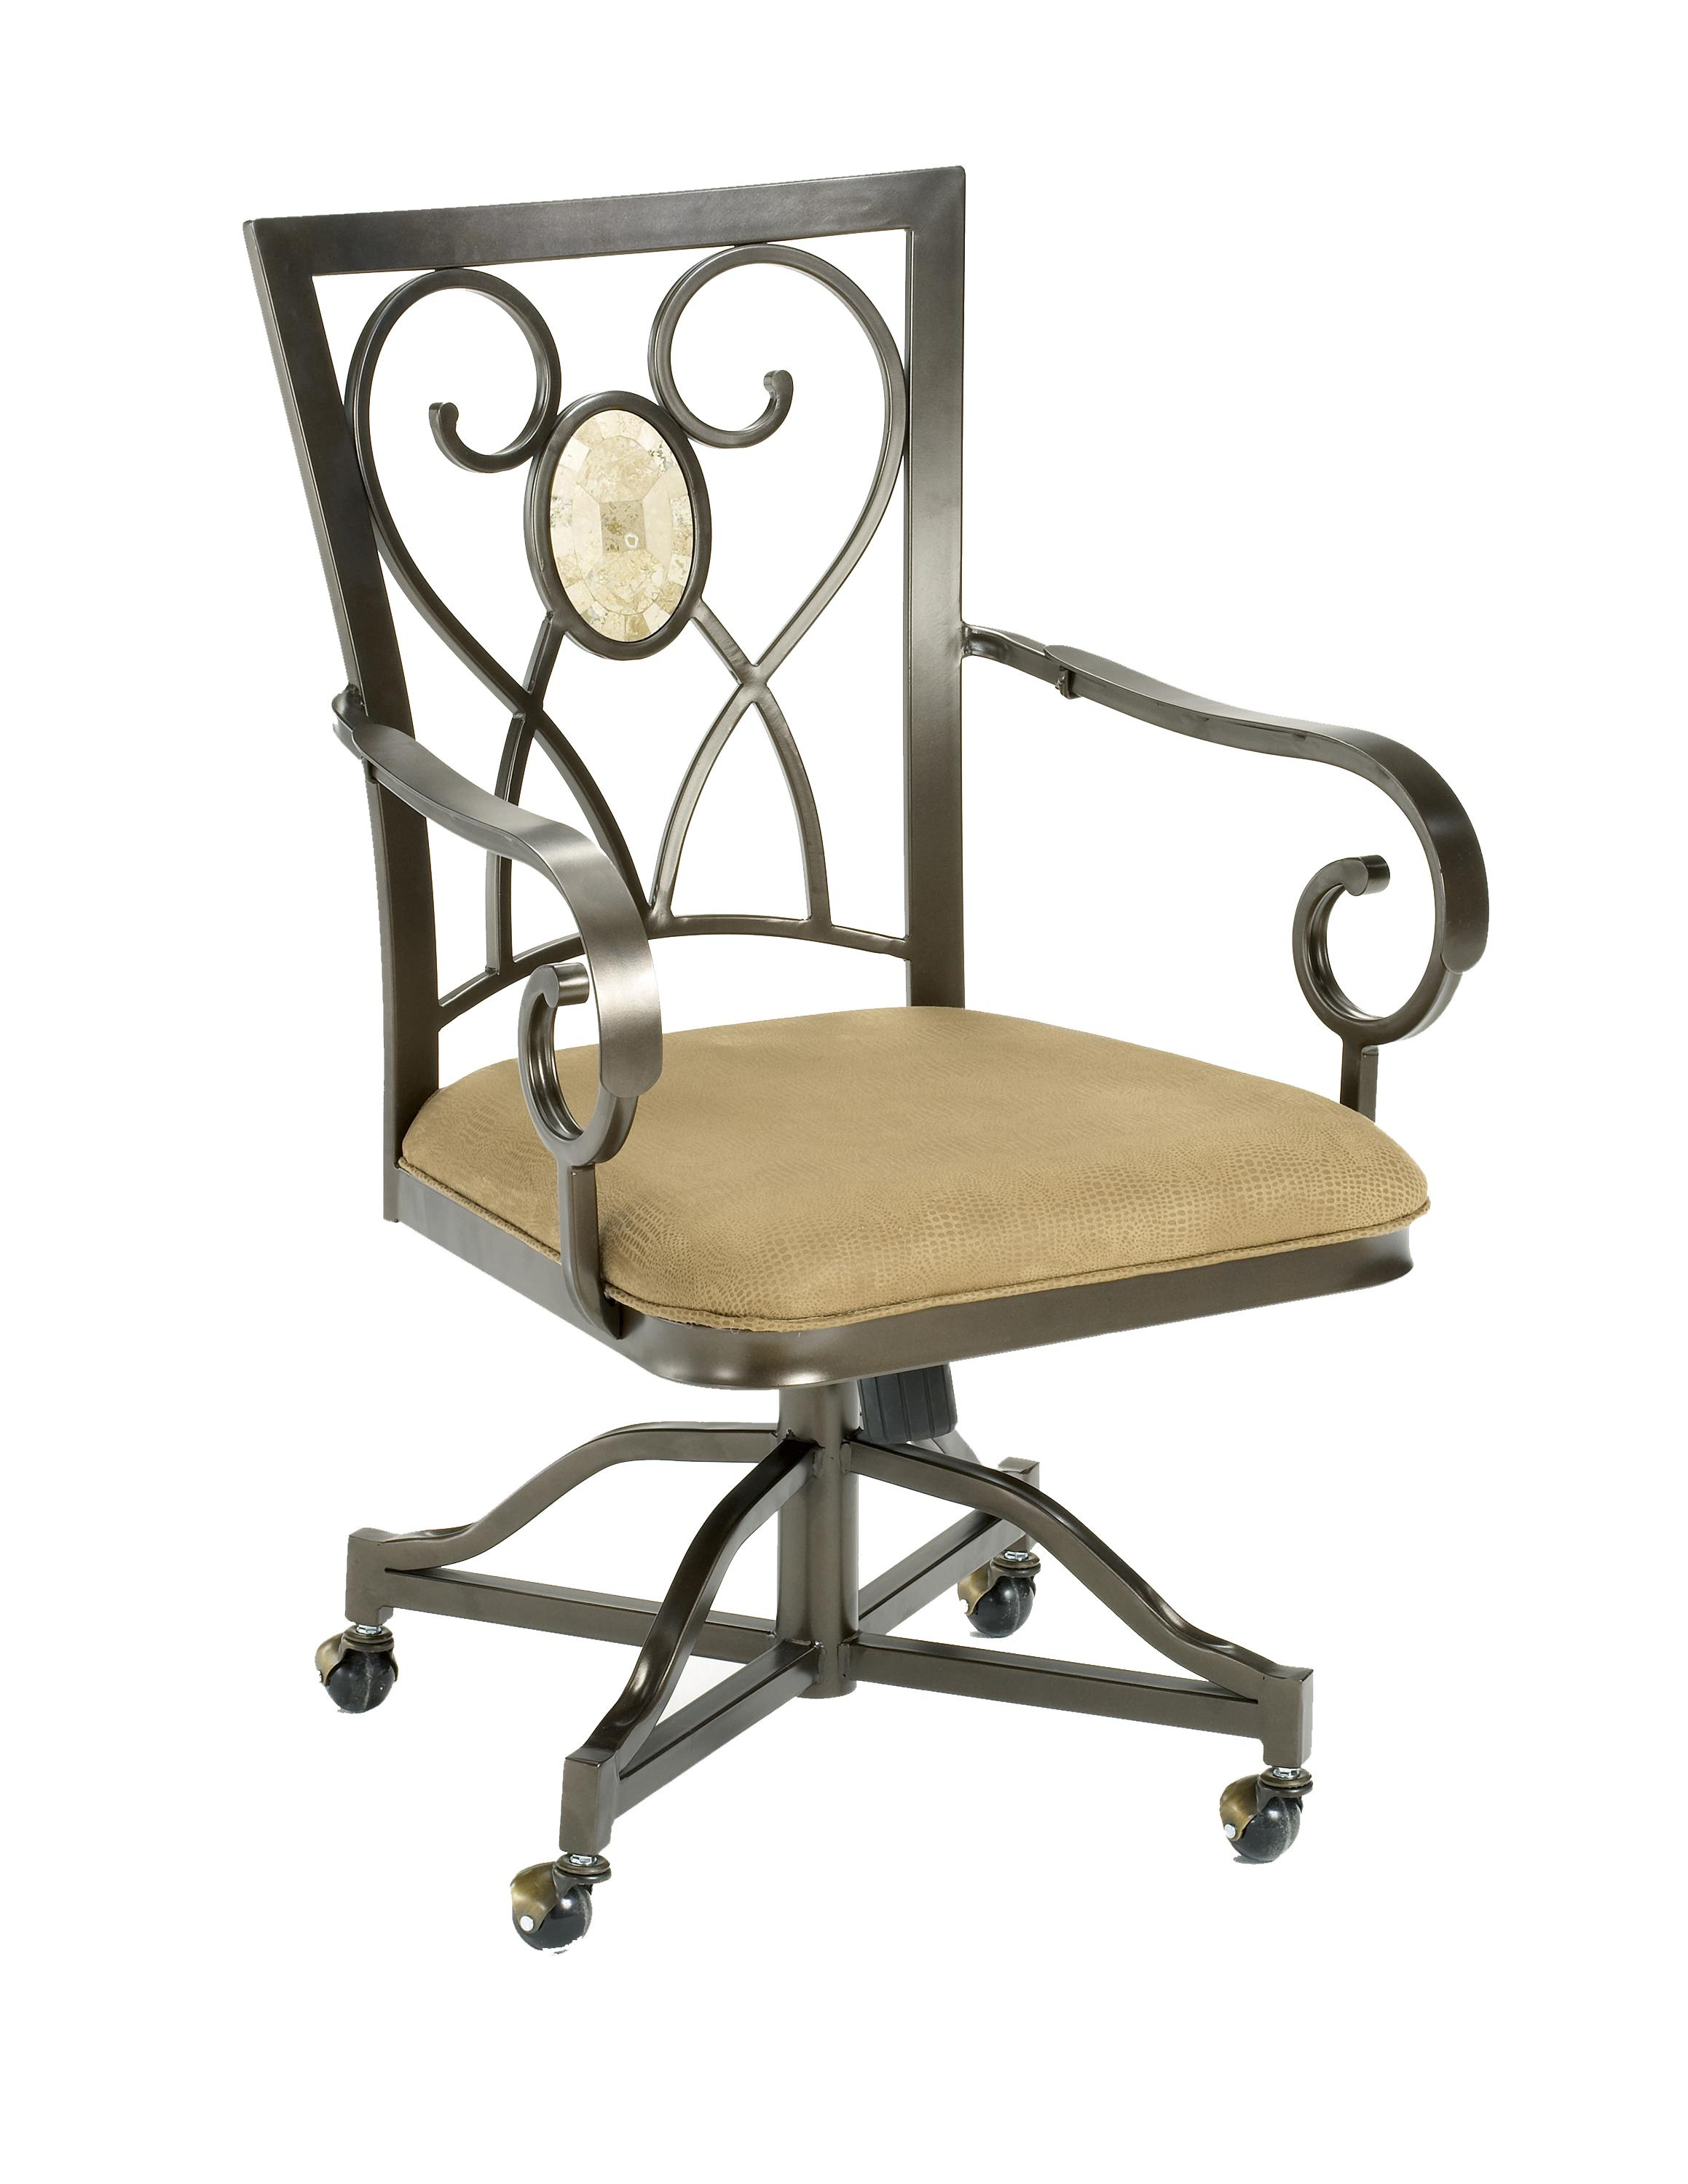 Hillsdale Brookside Oval Caster Chair - Item Number: 4815-804